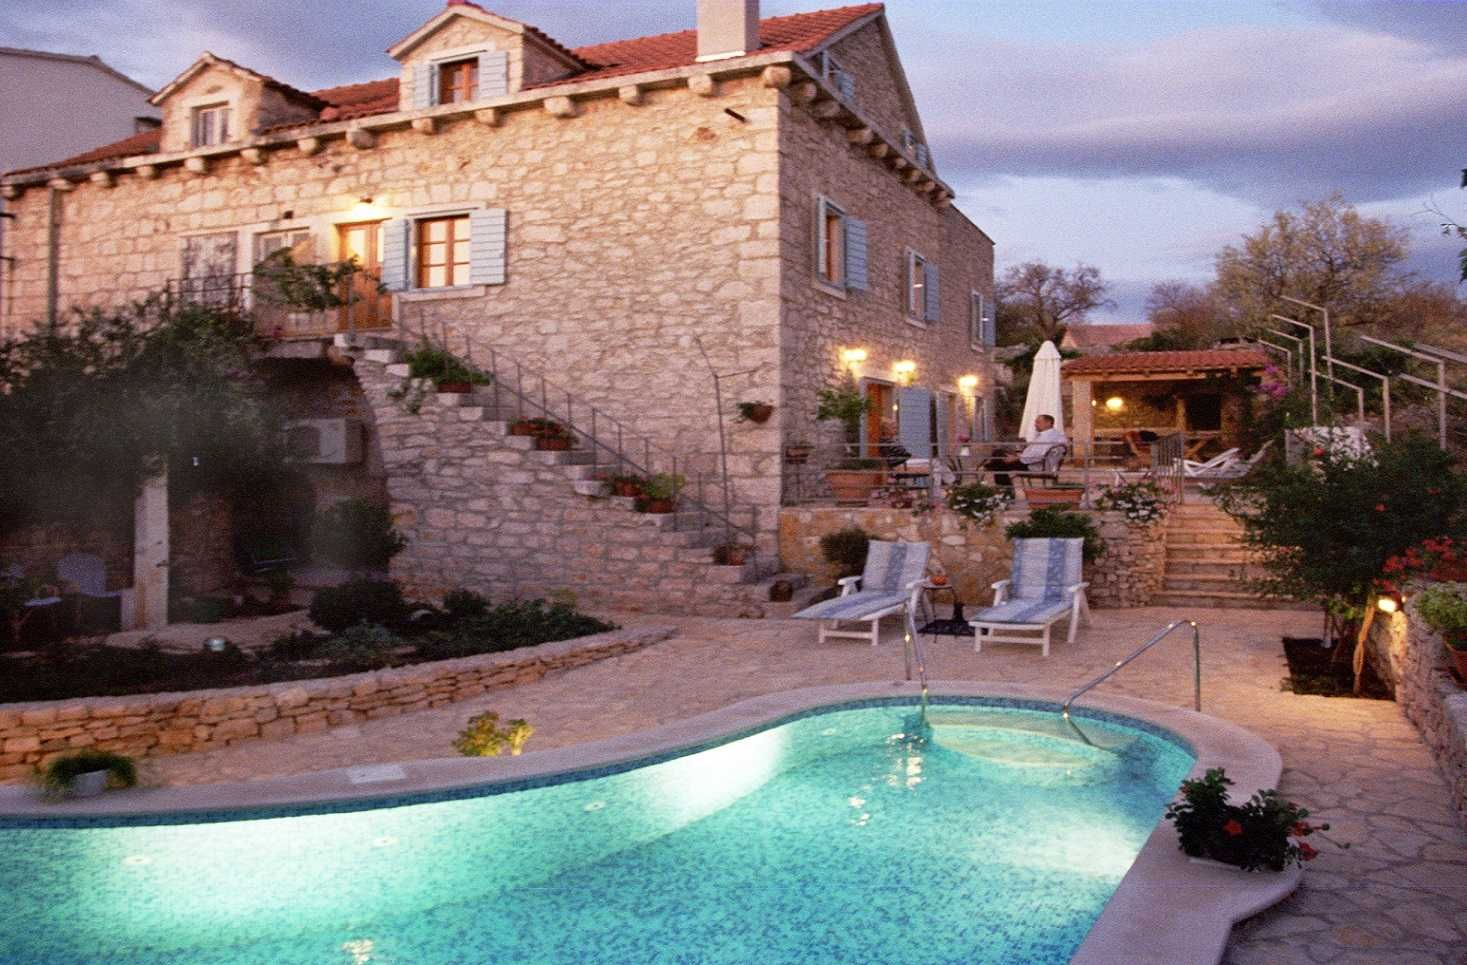 Family Villas Croatia Holiday Rentals 2020 kid friendly